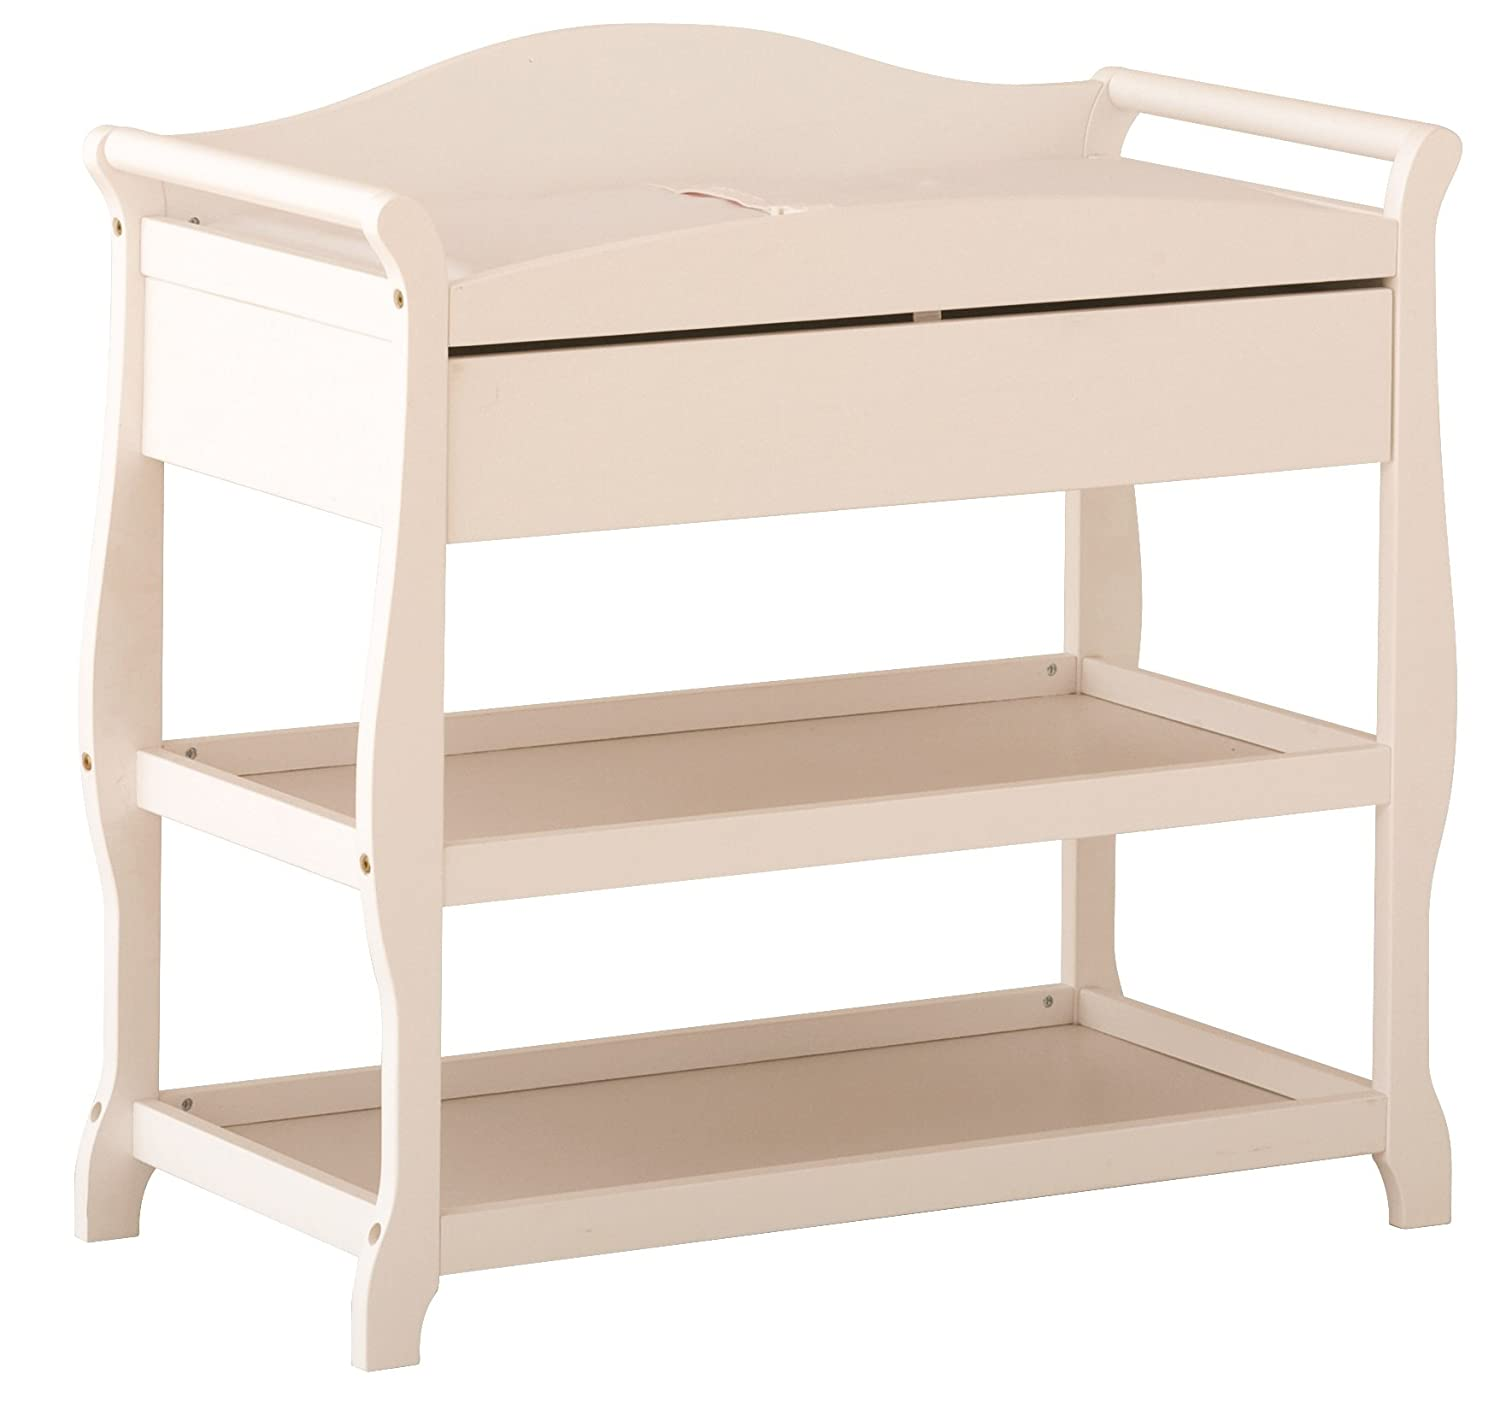 B0002ZHDVC Storkcraft Aspen Changing Table with Drawer, White 71WRwedyKgL